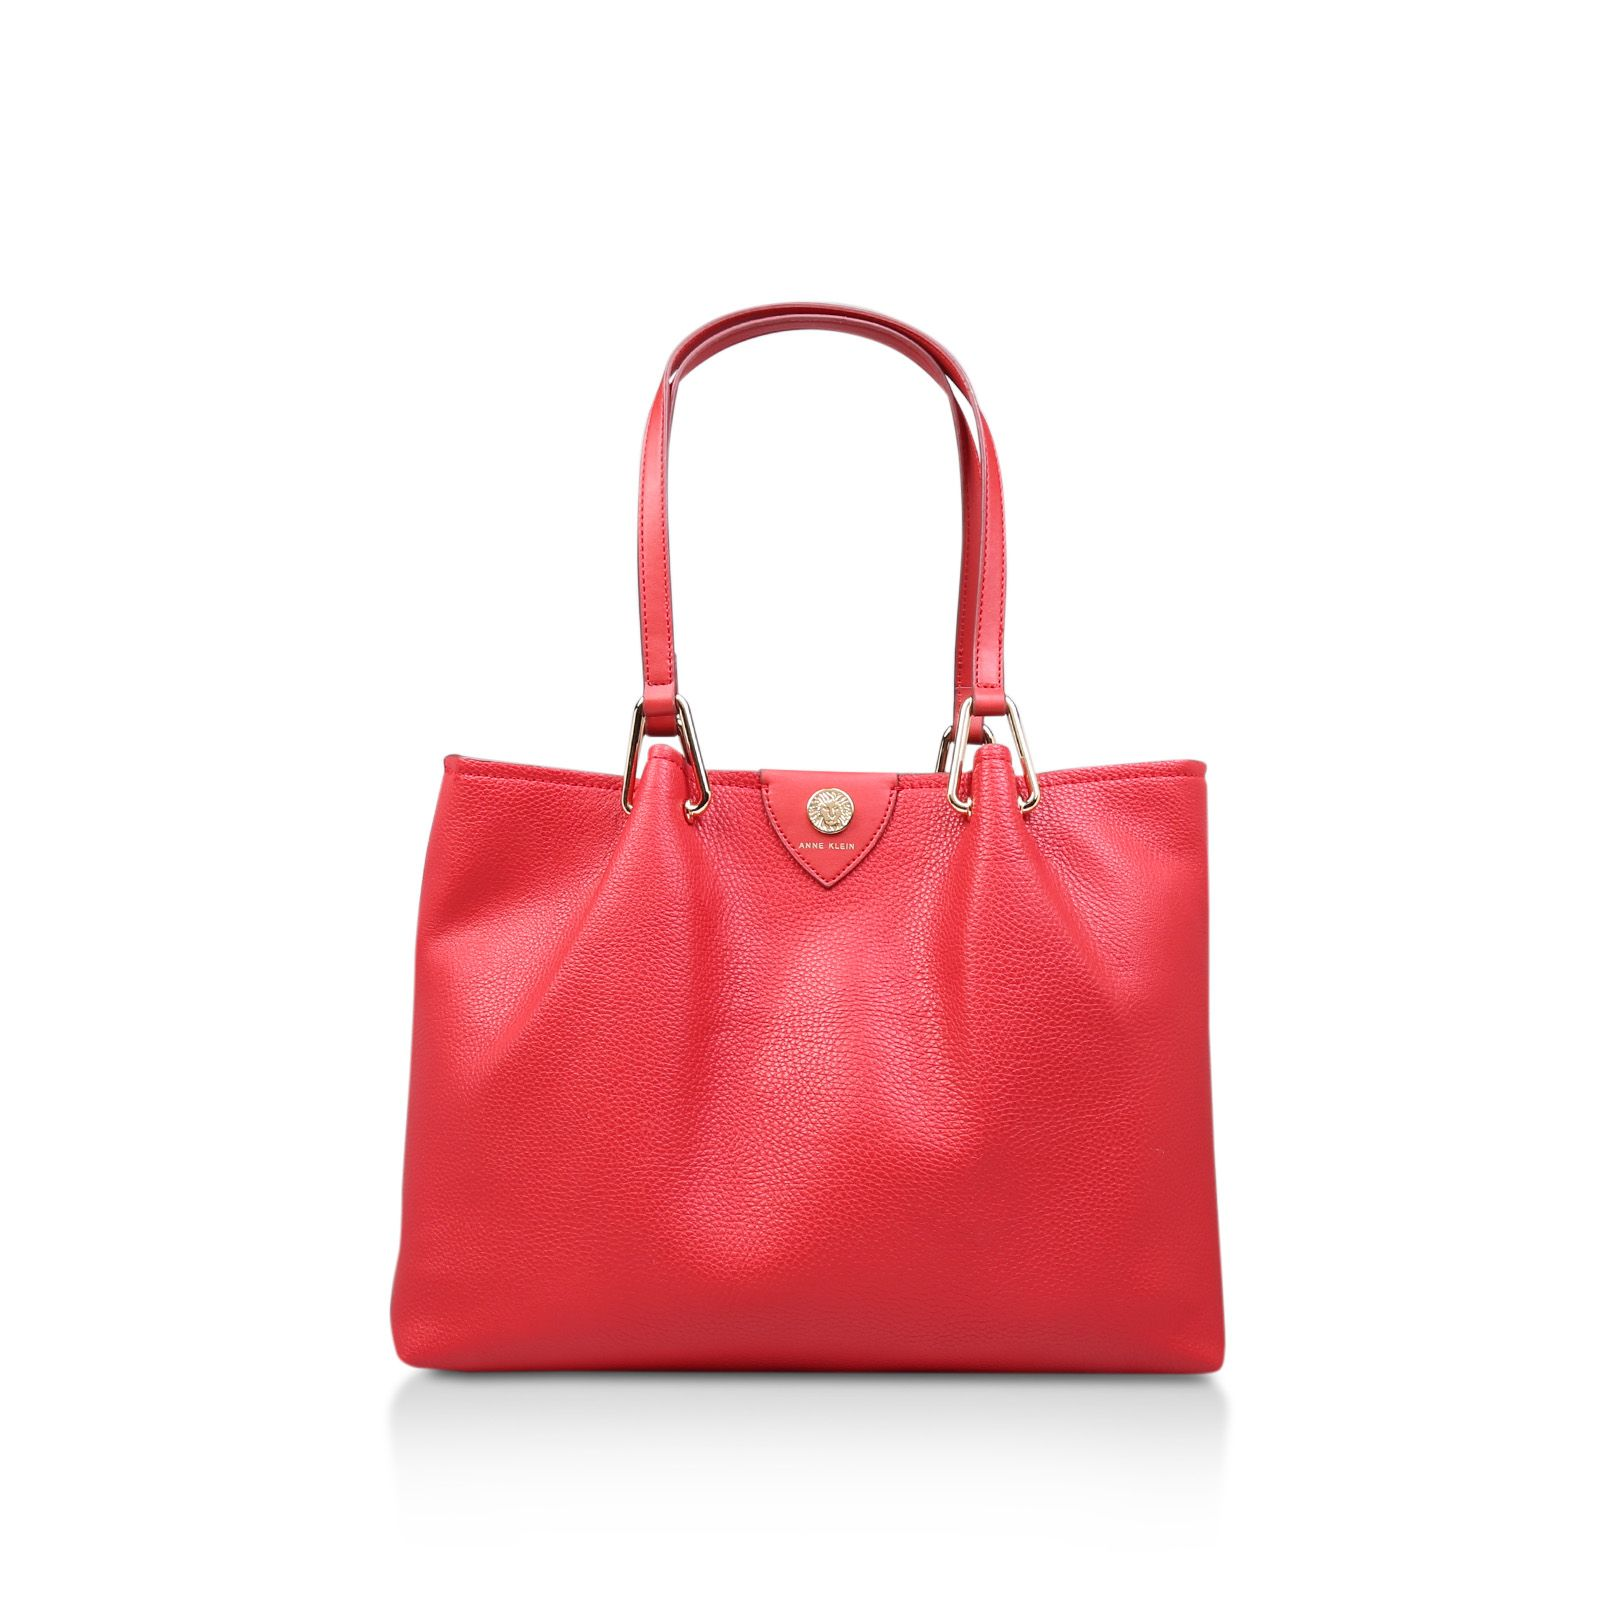 Anne Klein Hinge Soft Tote Bag, Red